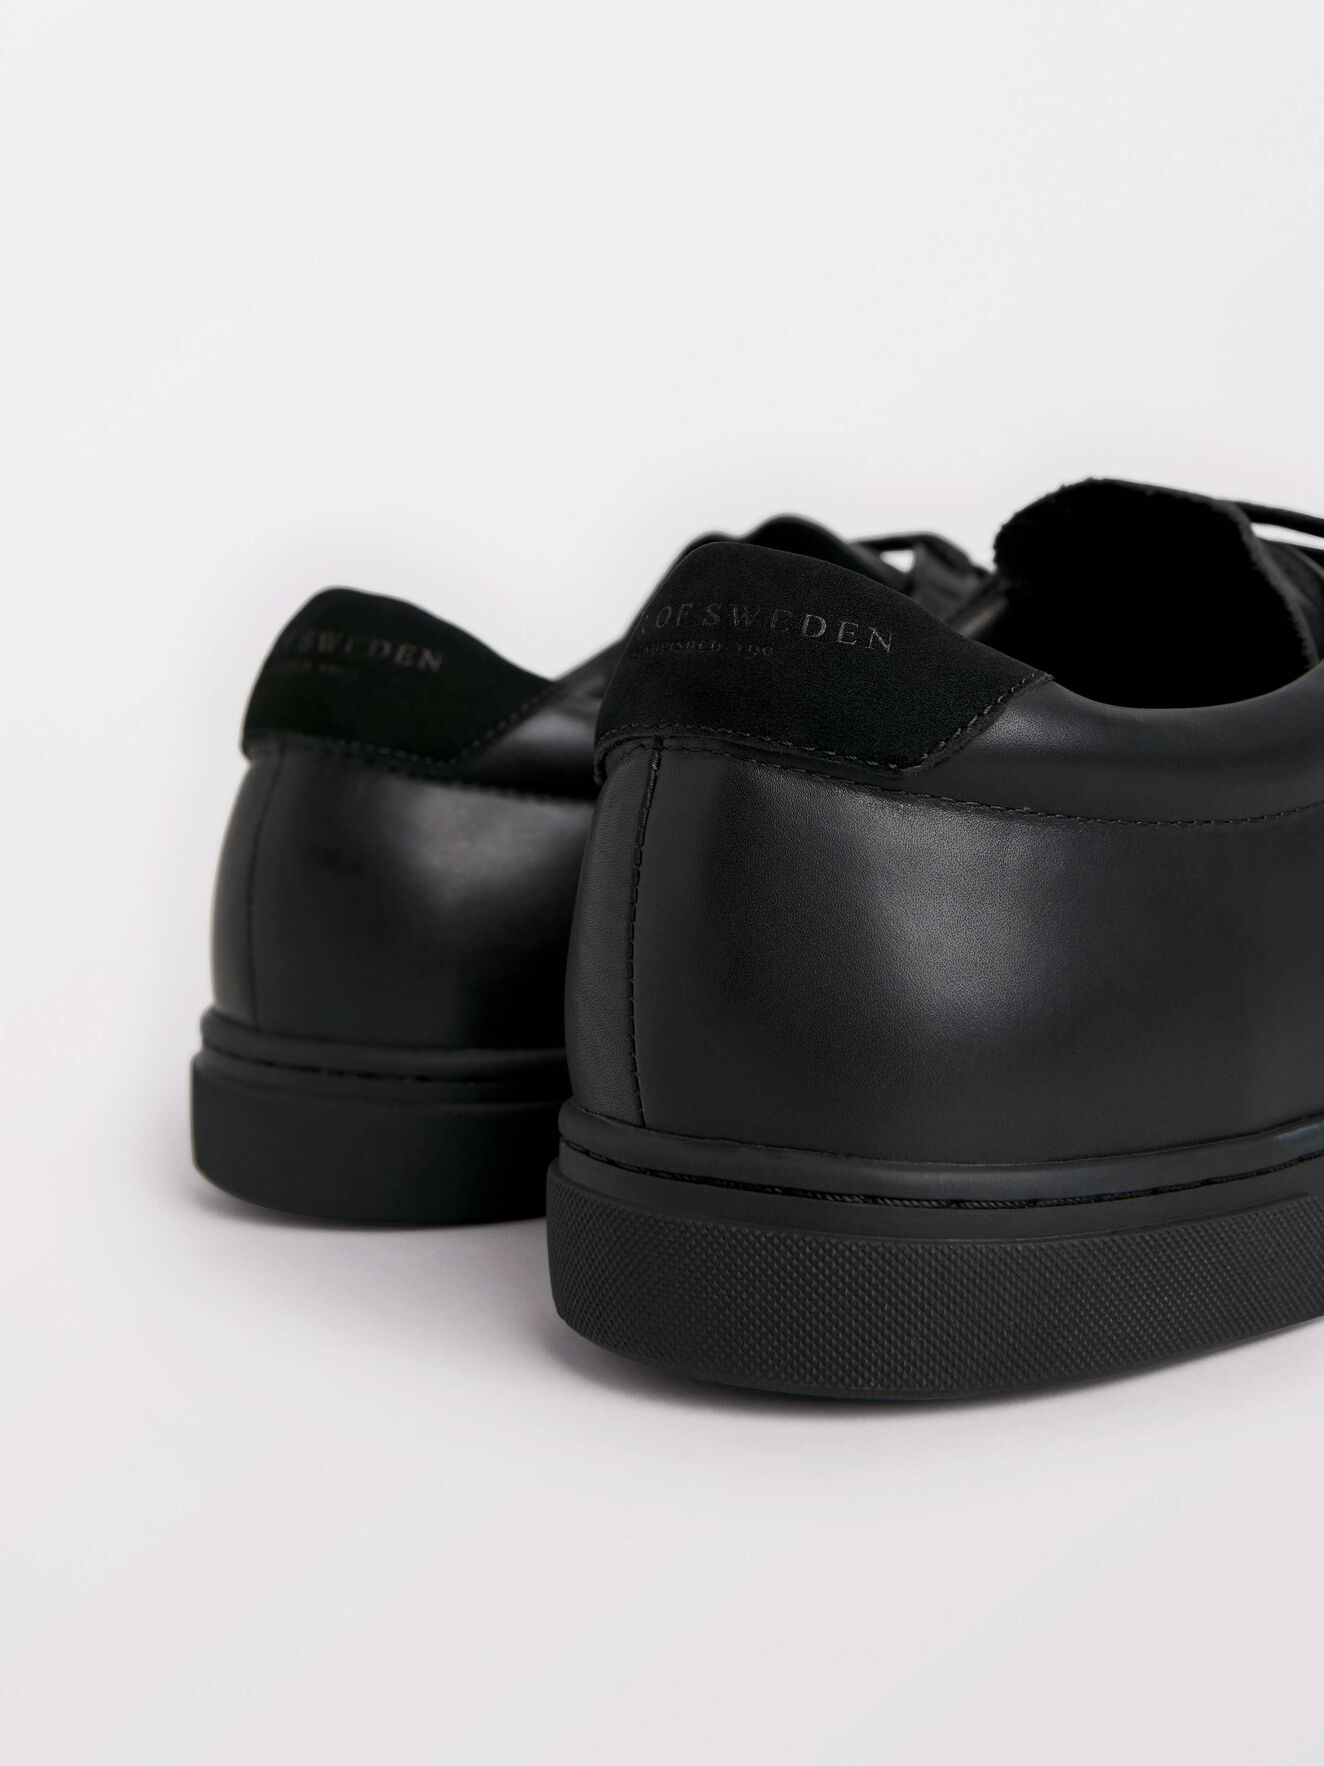 Arne Sneakers in Black from Tiger of Sweden